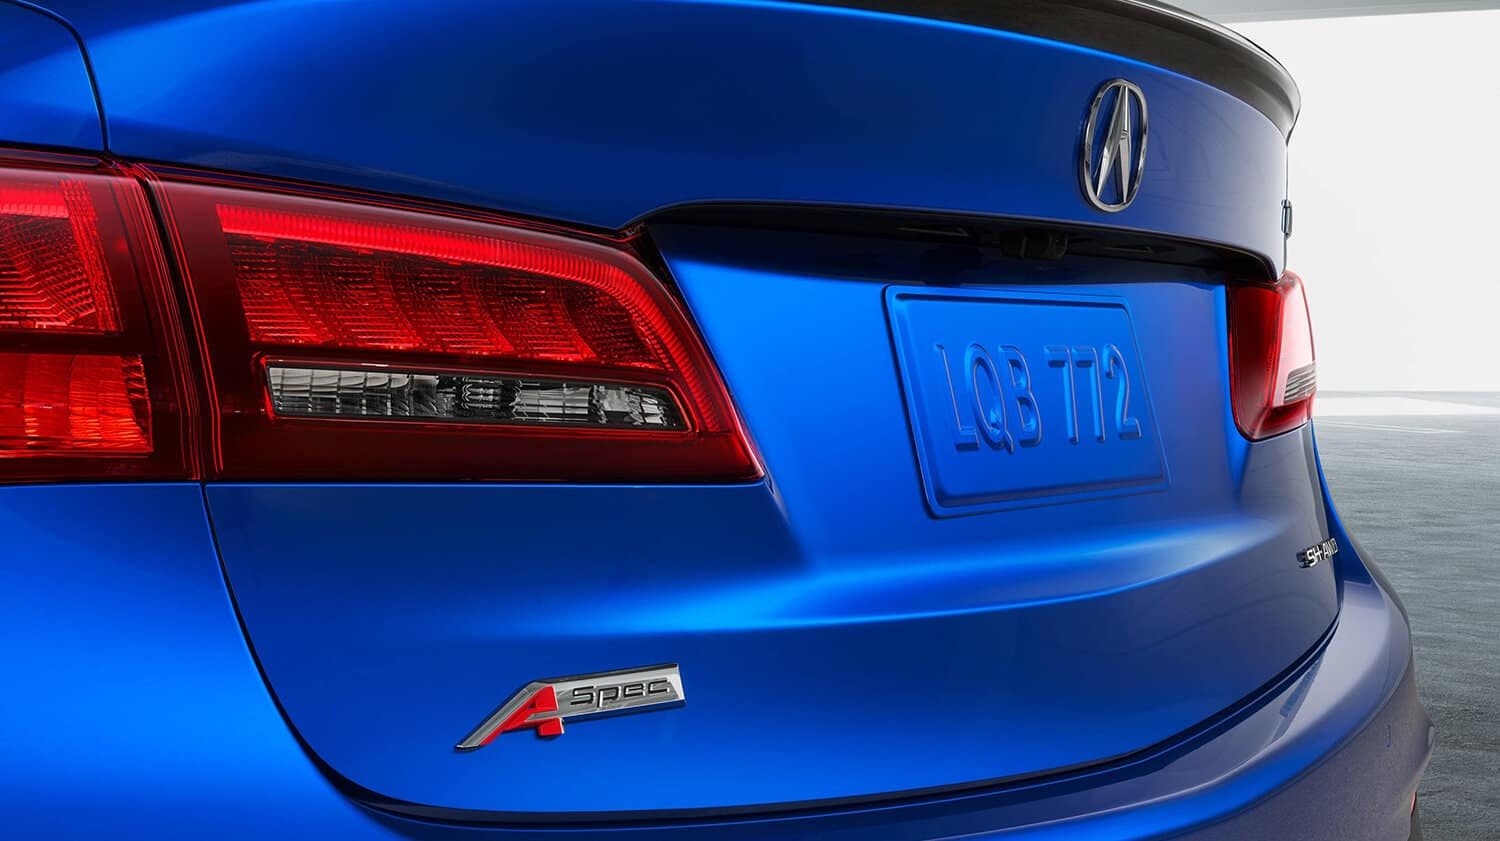 2020 Acura TLX Exterior Rear Angle A-Spec Badge Closeup